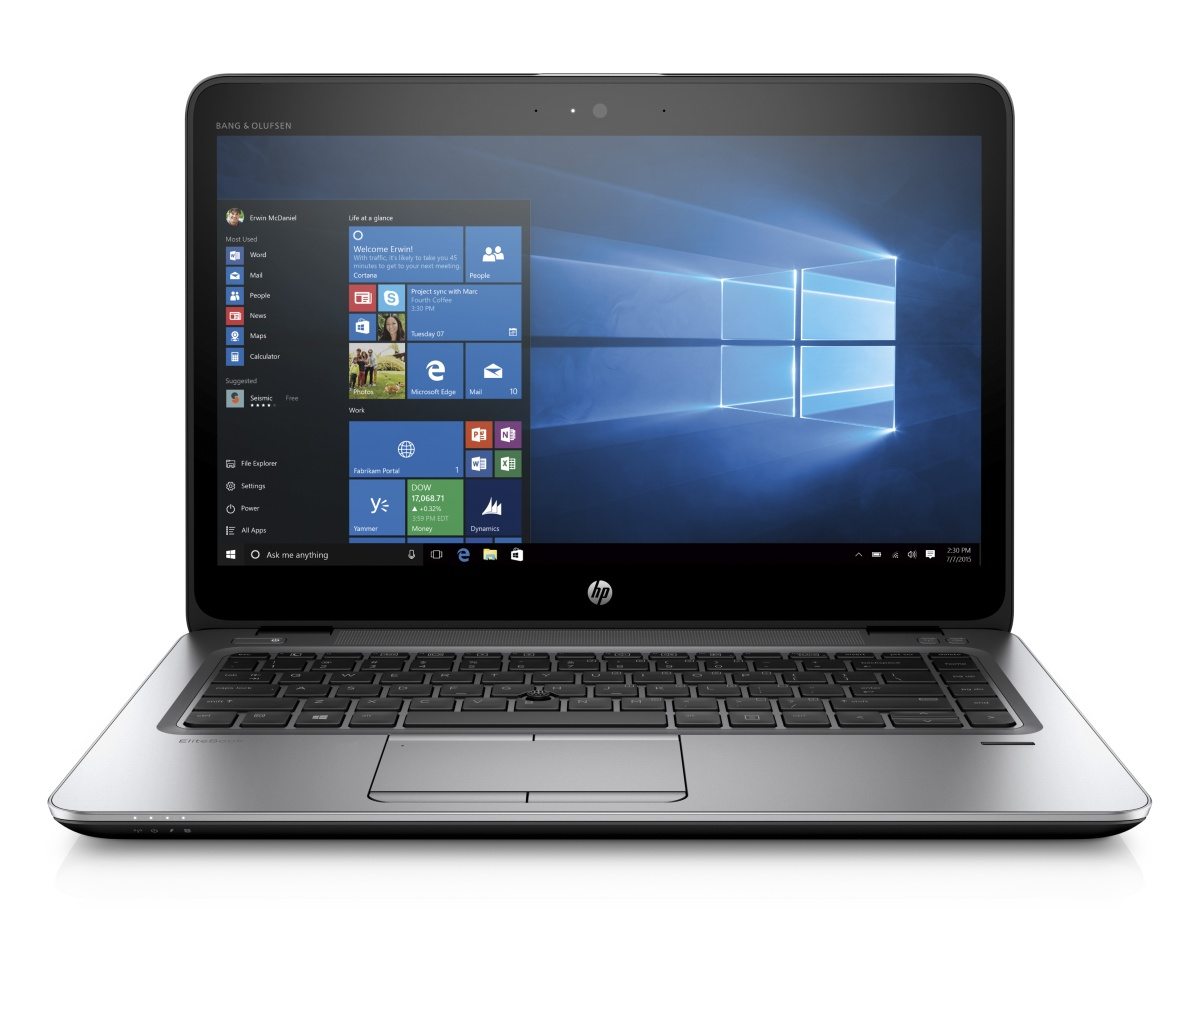 HP EliteBook 840 G3 14'' HD /i5-6200U/4GB/500GB/WIFI/BT/MCR/FPR/3RServis/7+10P